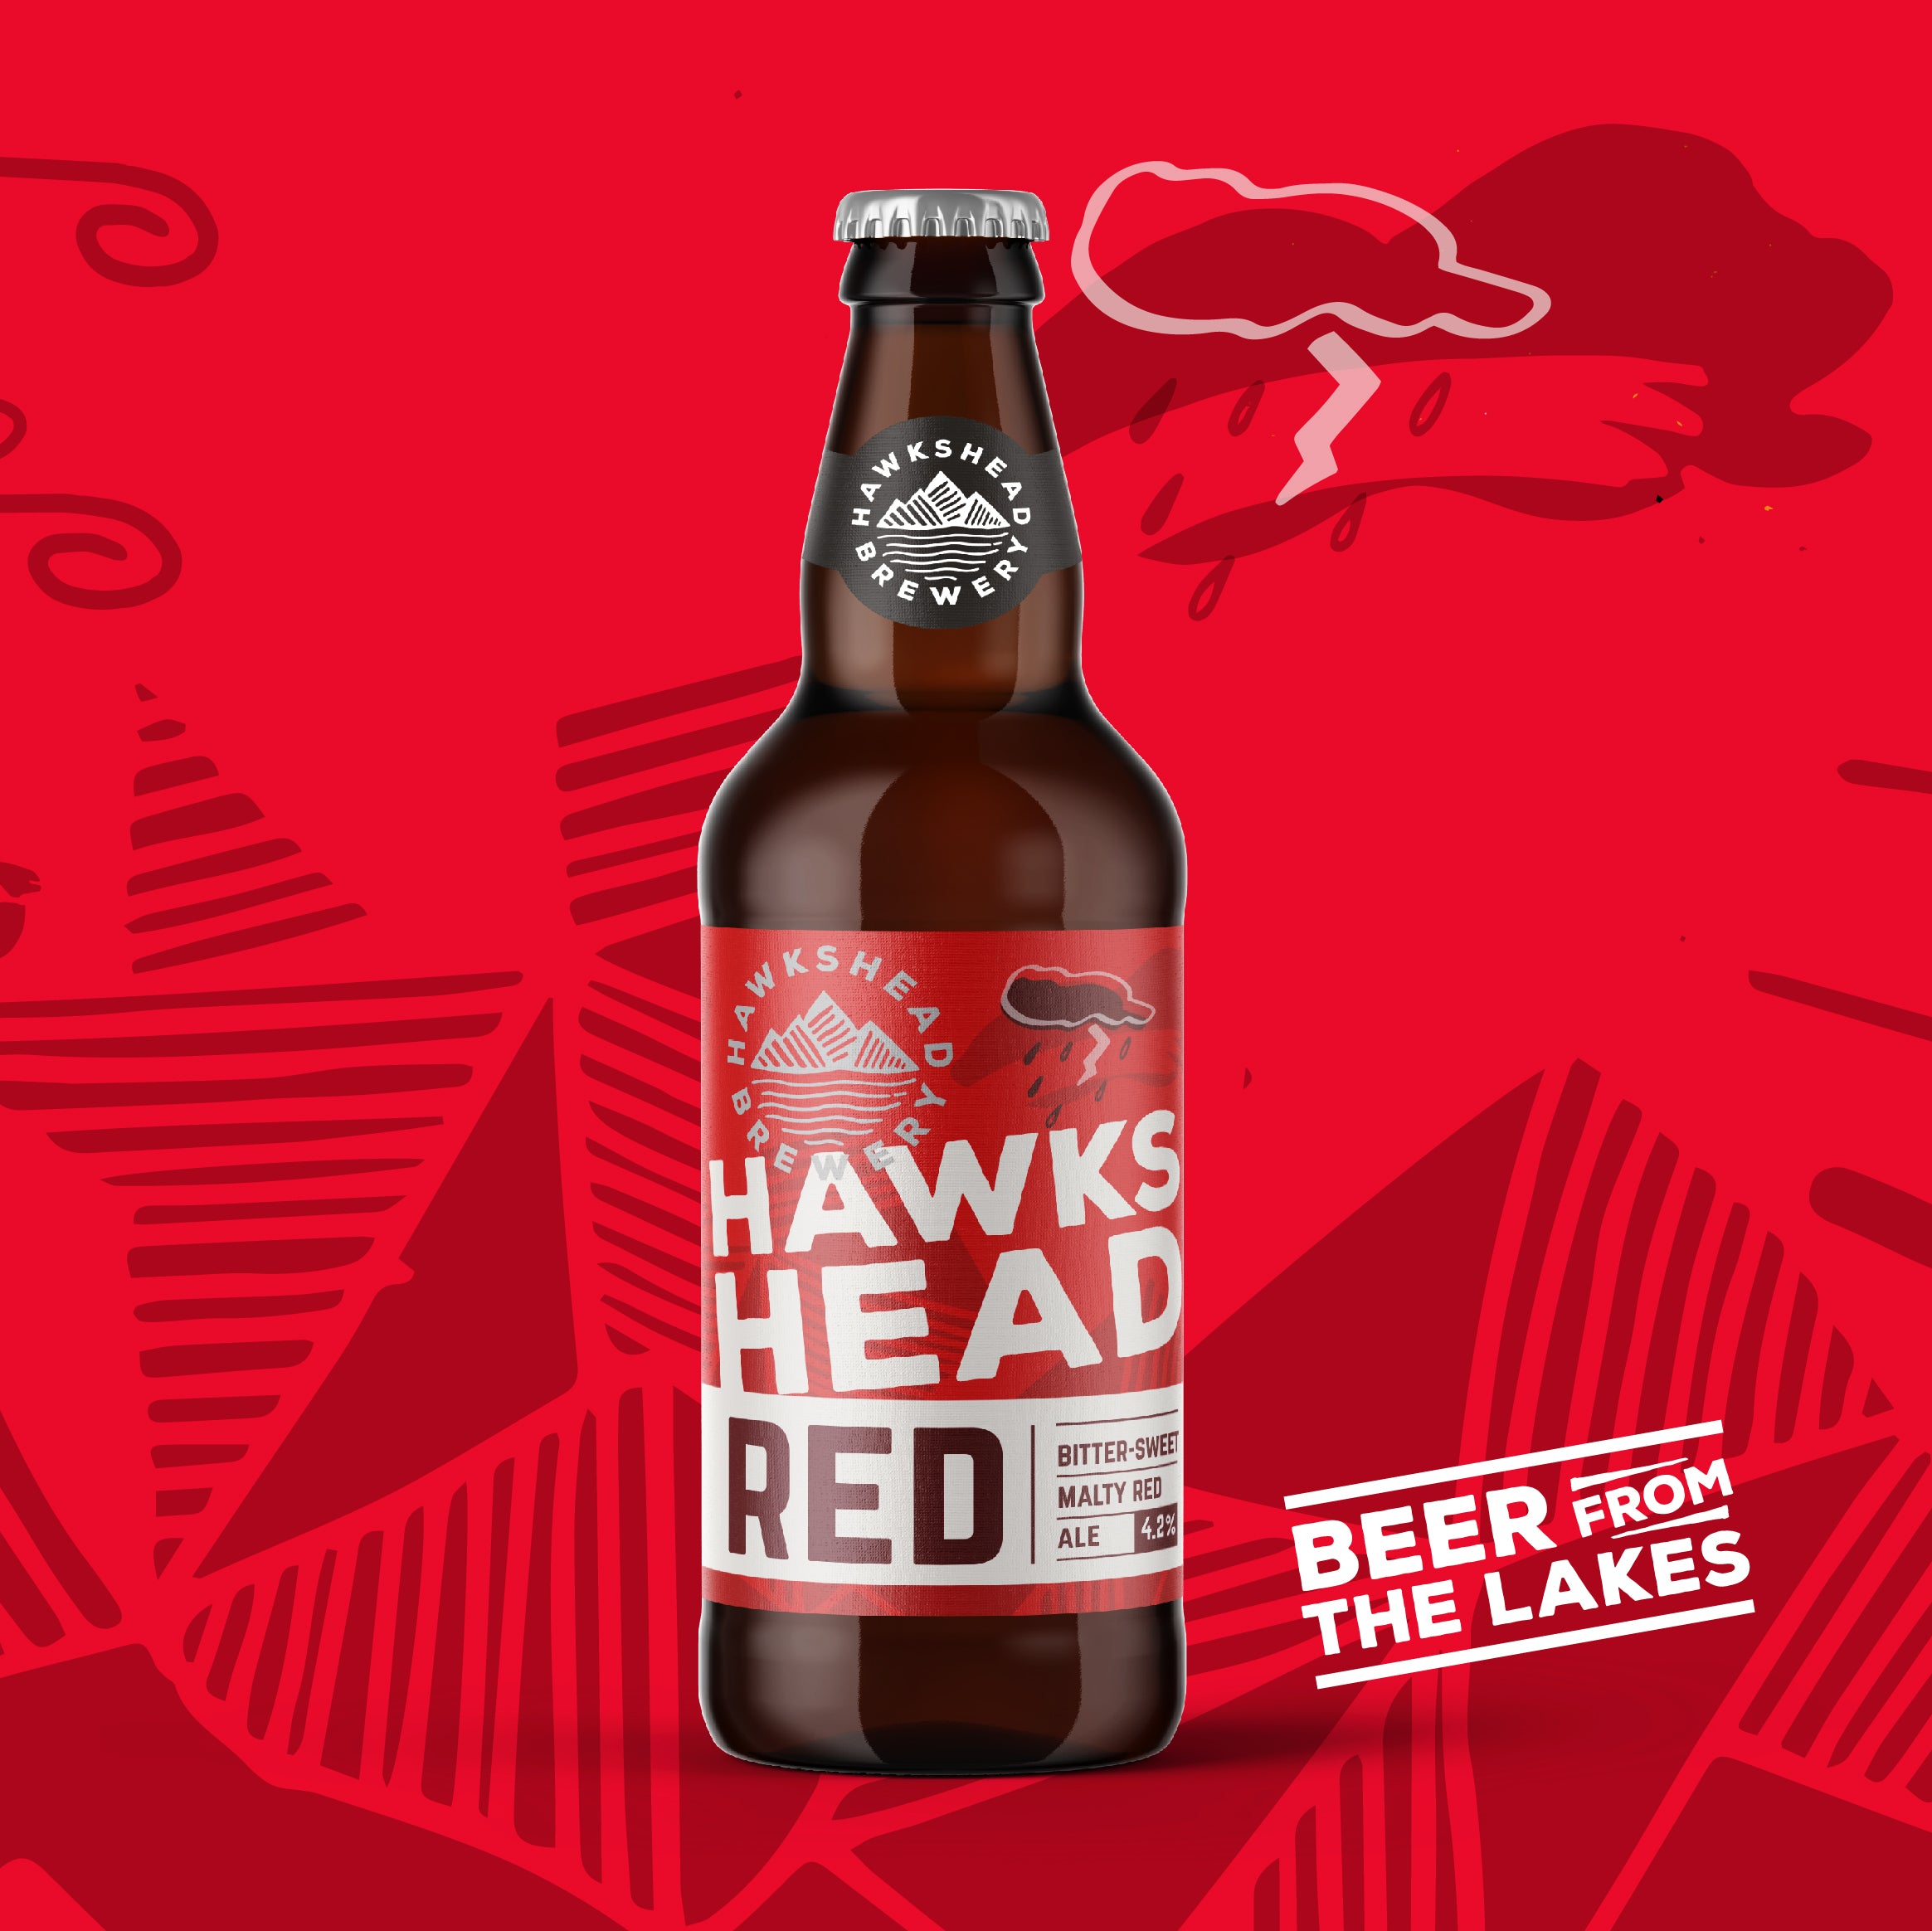 Hawkshead Red 12 Bottle Case